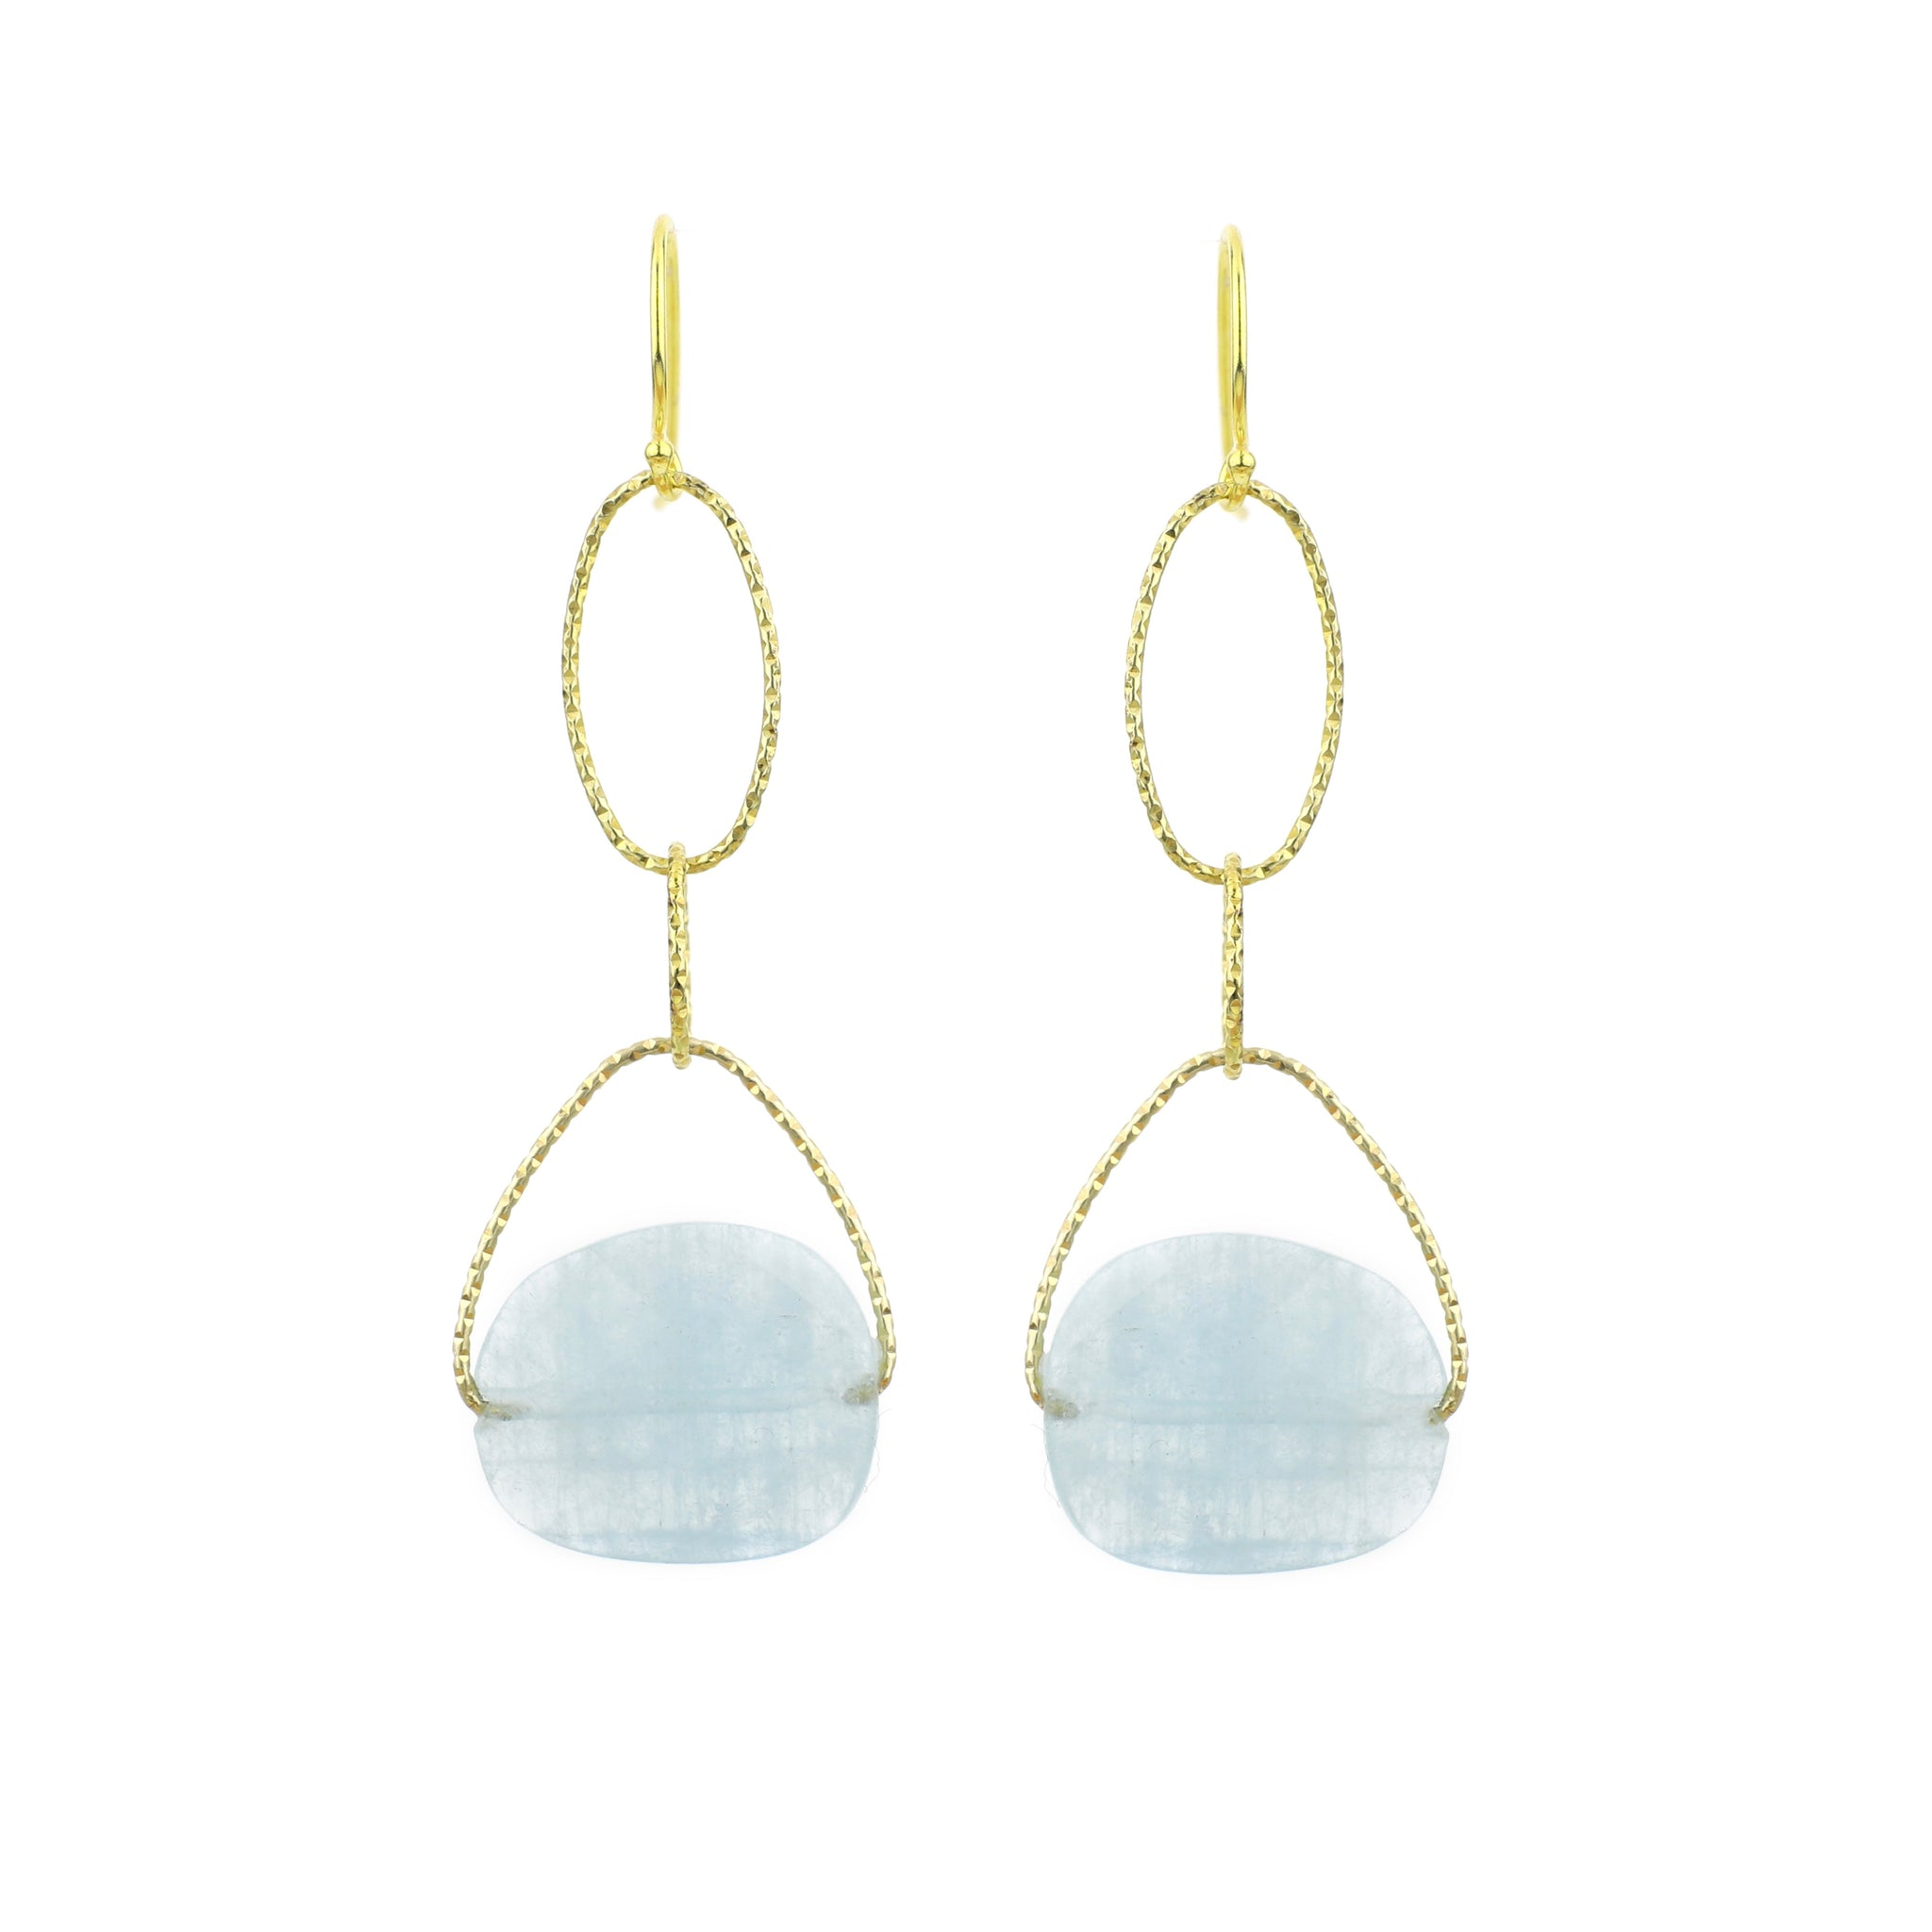 Aquamarrine Faceted Lovelier Earrings